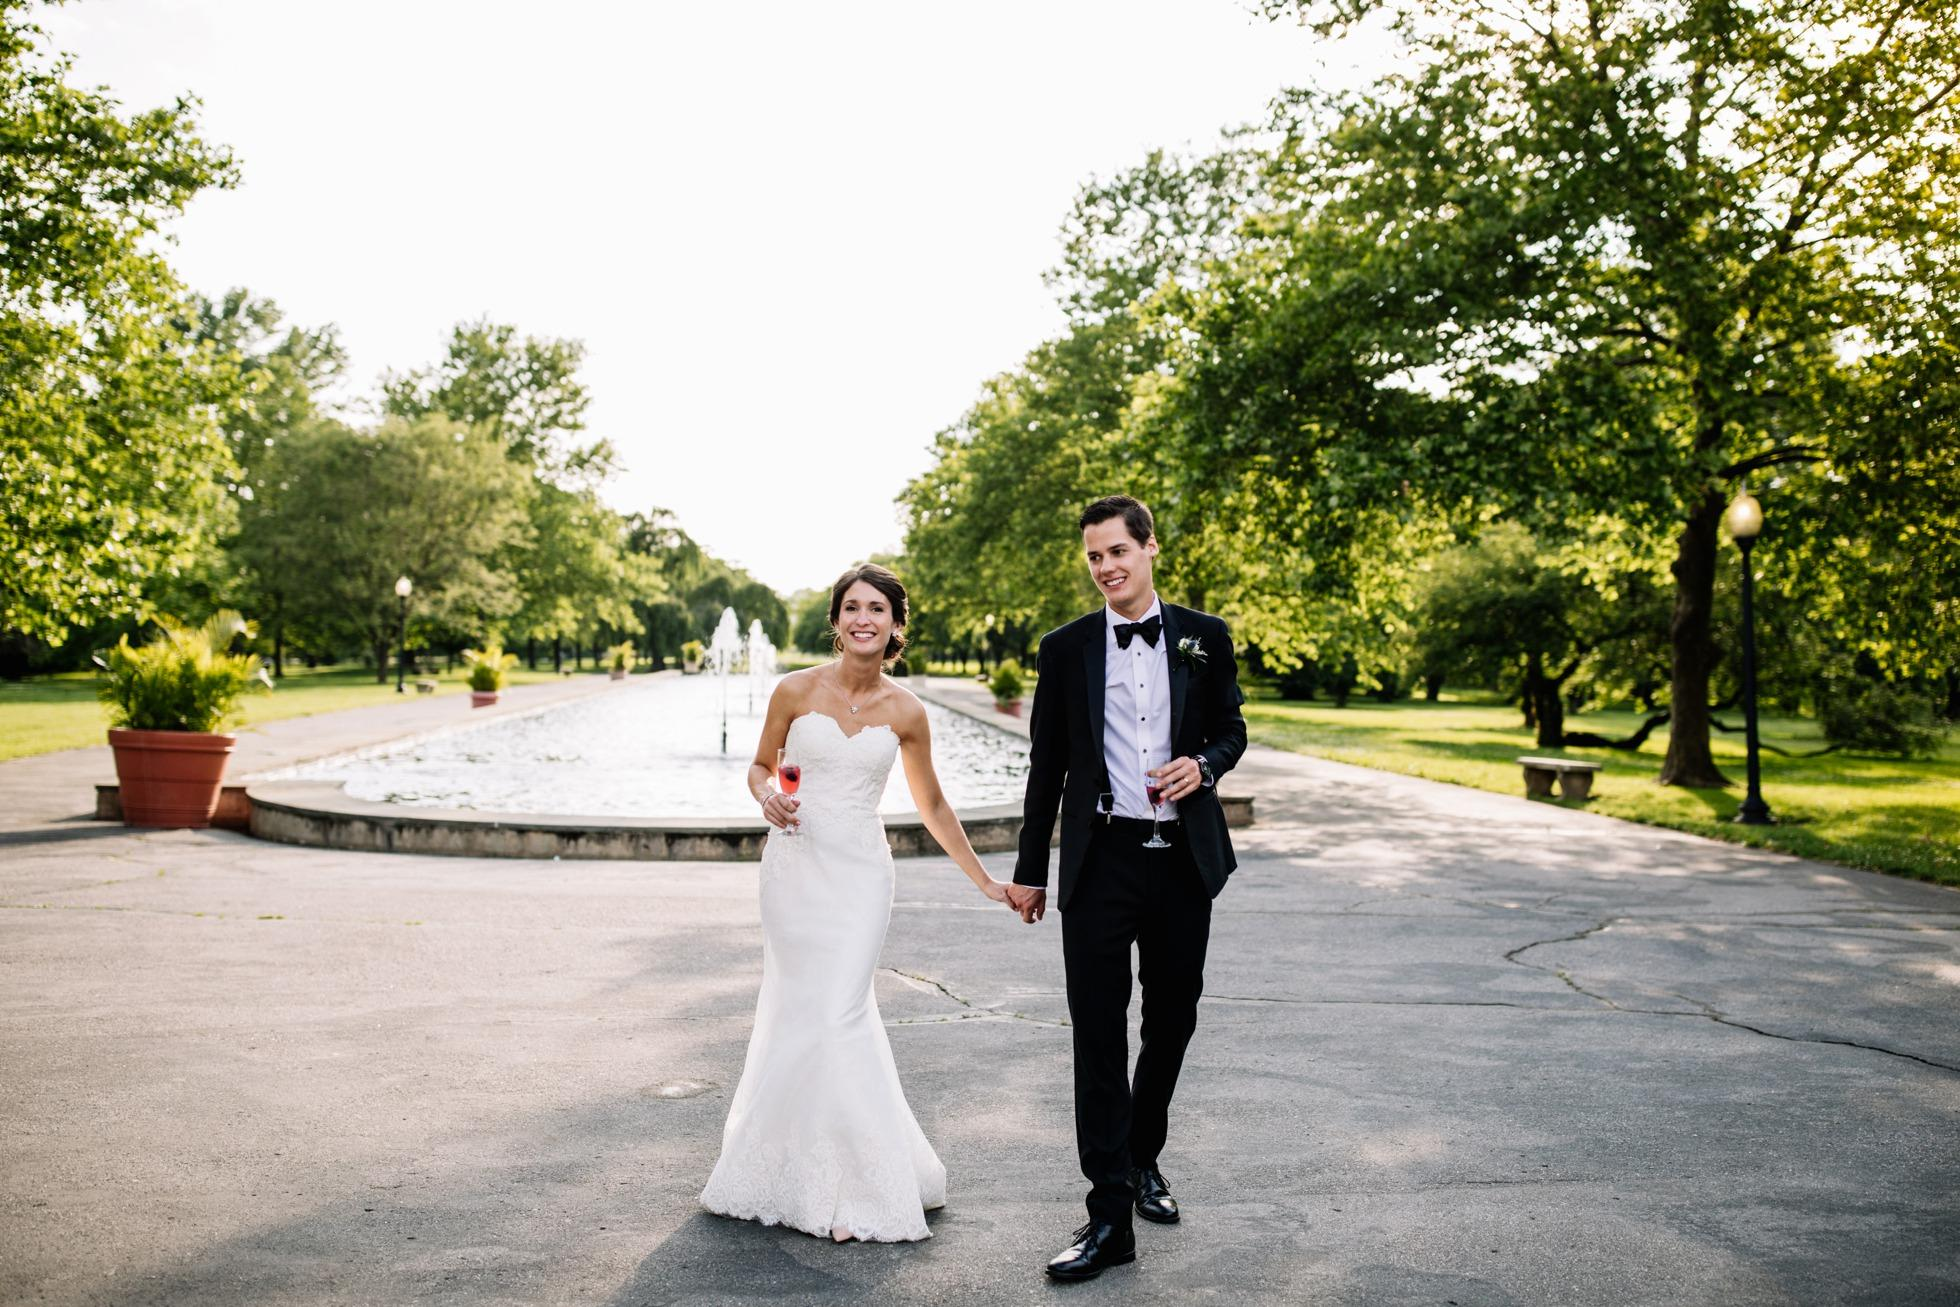 13 Unique Venues For A Philadelphia Wedding | Philly In Love